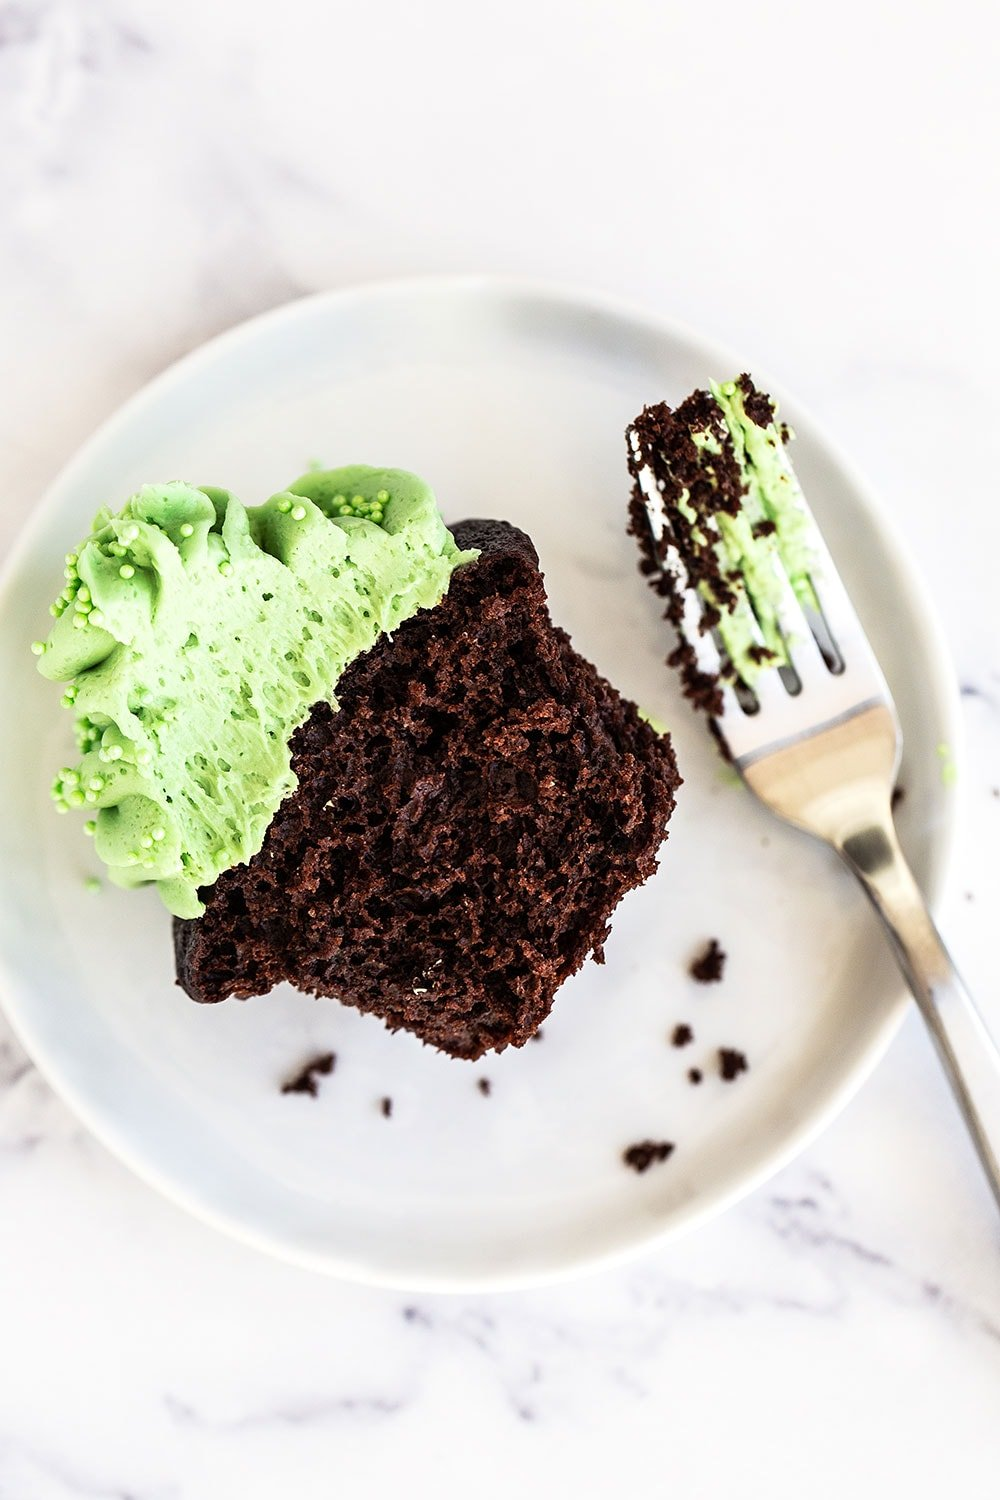 Chocolate mint cupcake on a plate with a fork